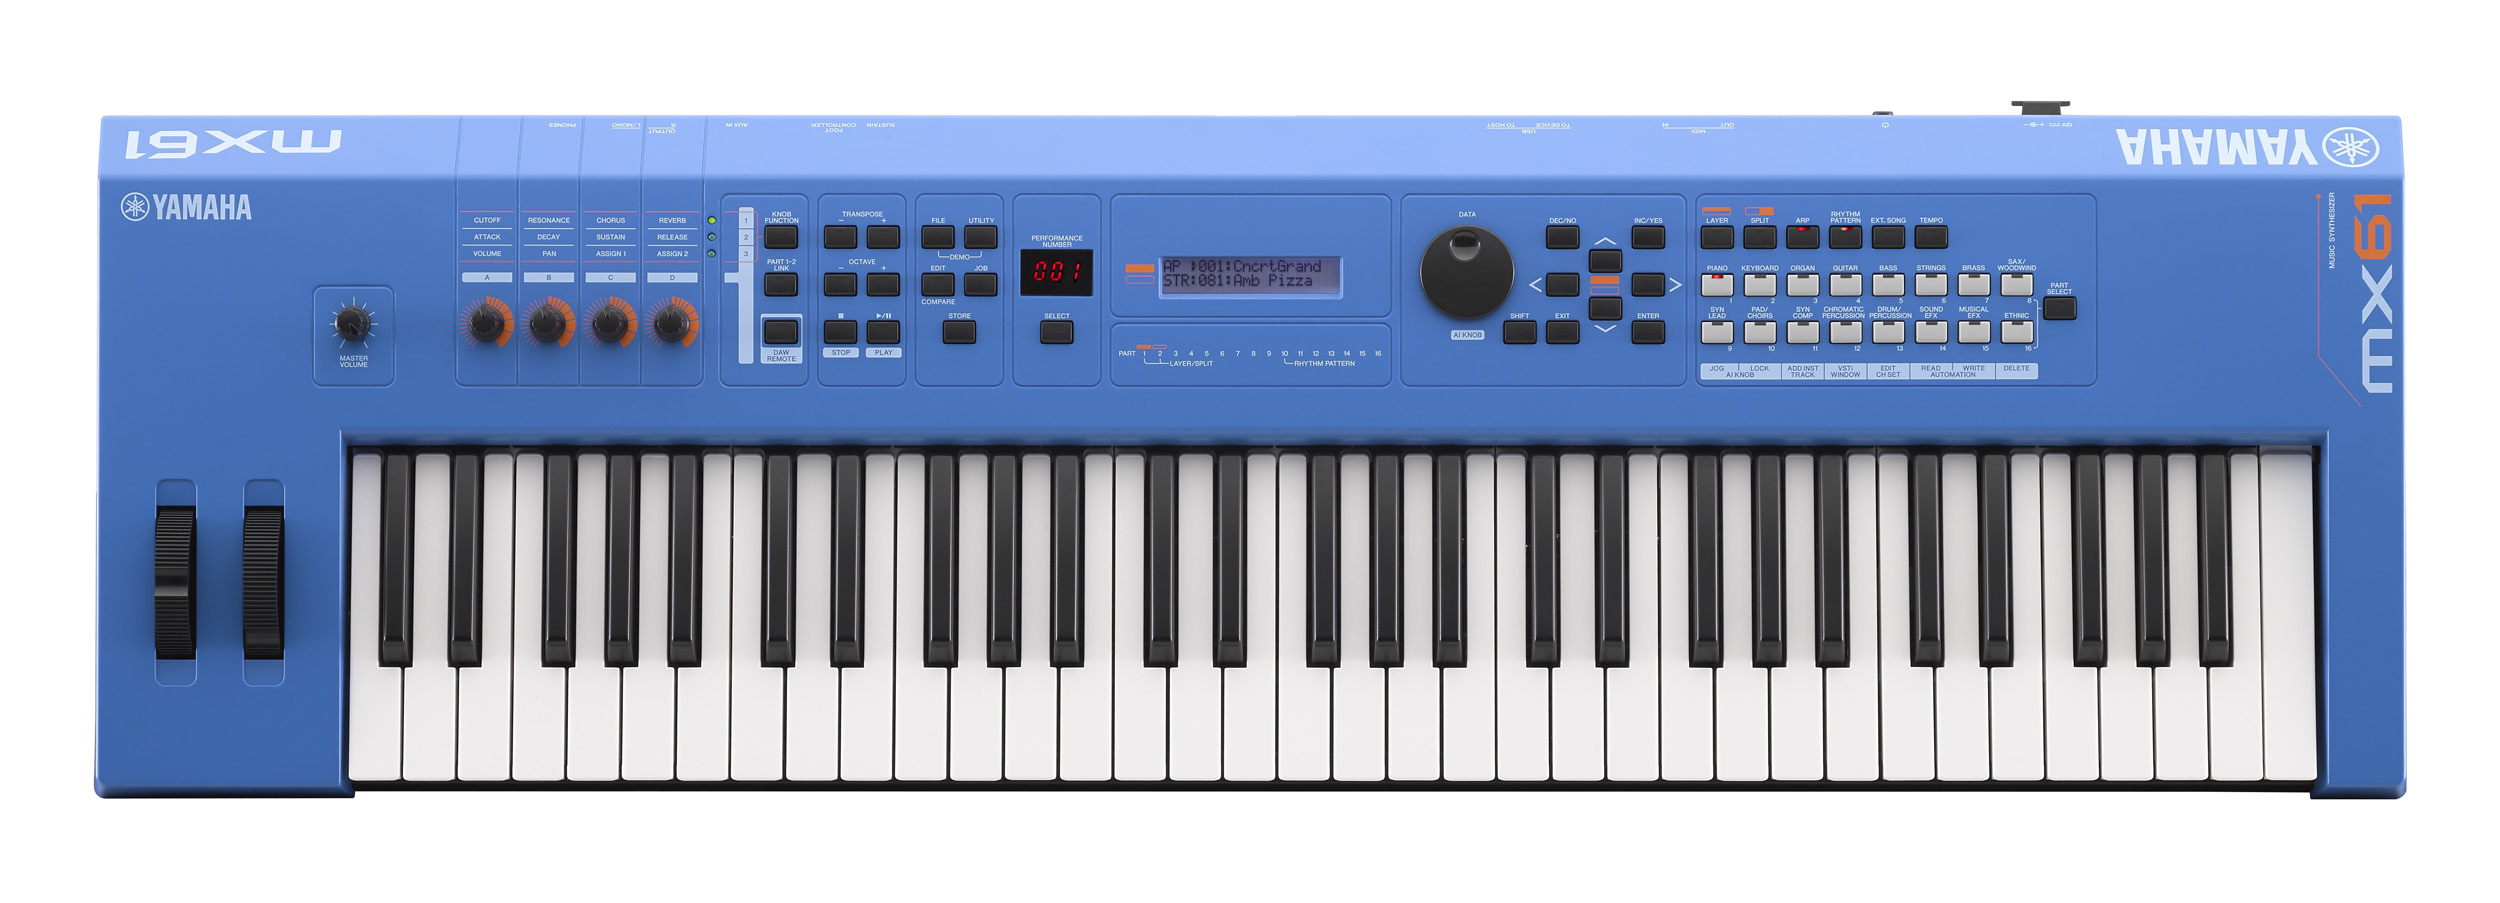 MX61 Version 2 Synthesizer 61 Key Edition, In Blue Finish